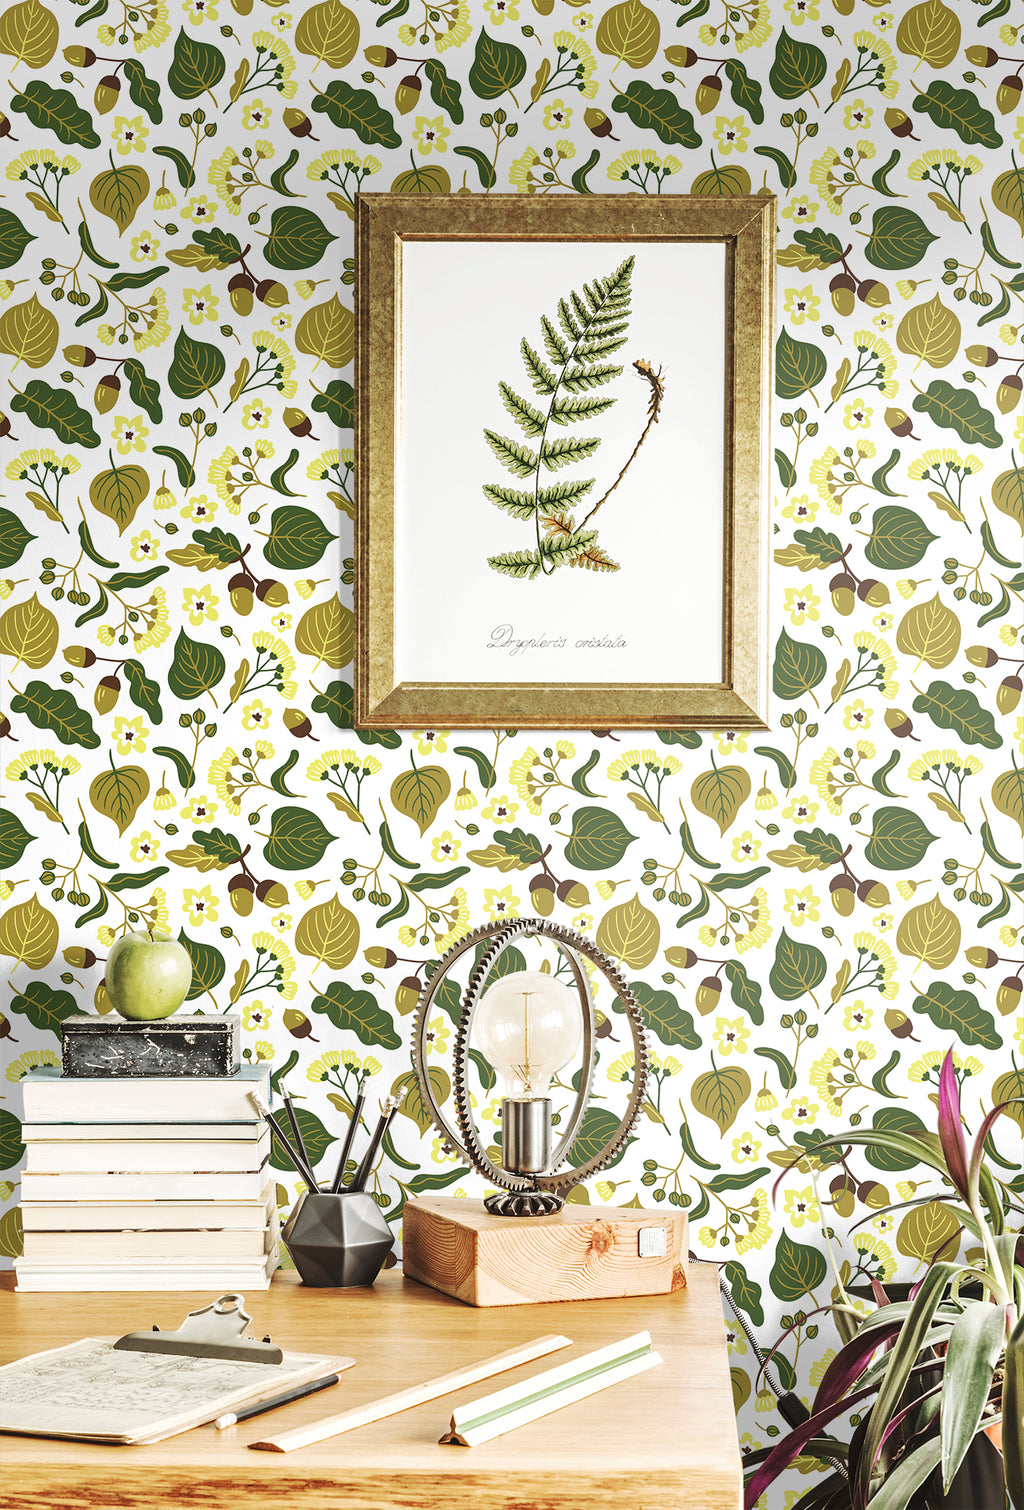 Vivid natural plant removable wallpaper behind a writing desk with papers and books